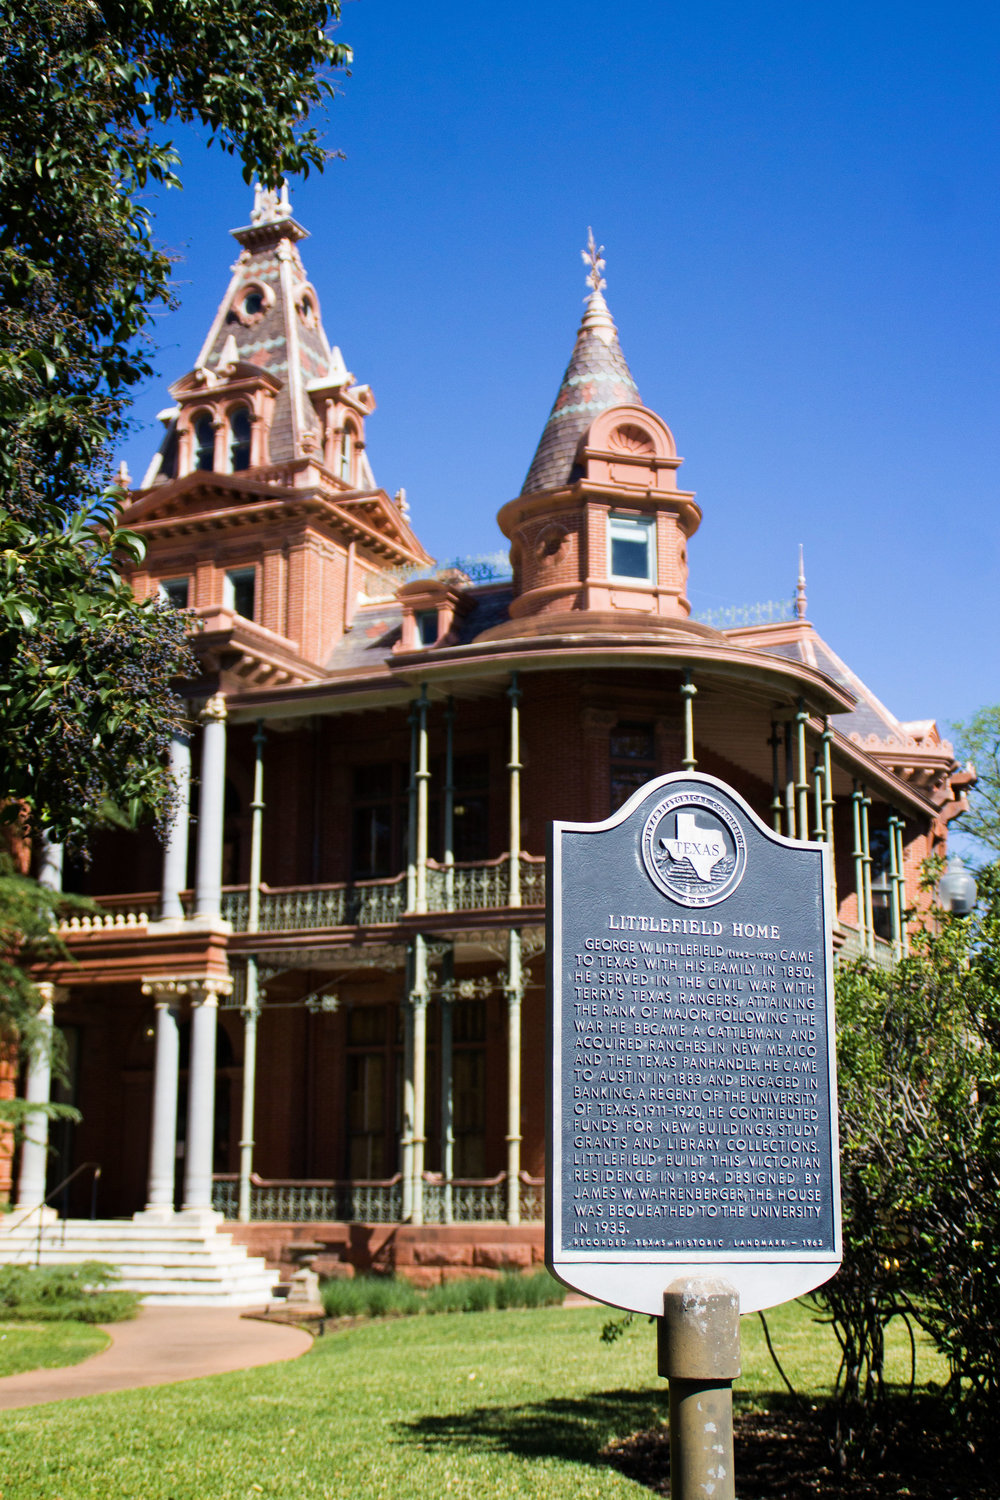 Littlefield Home was built by Littlefield in 1894 and was later given to UT.